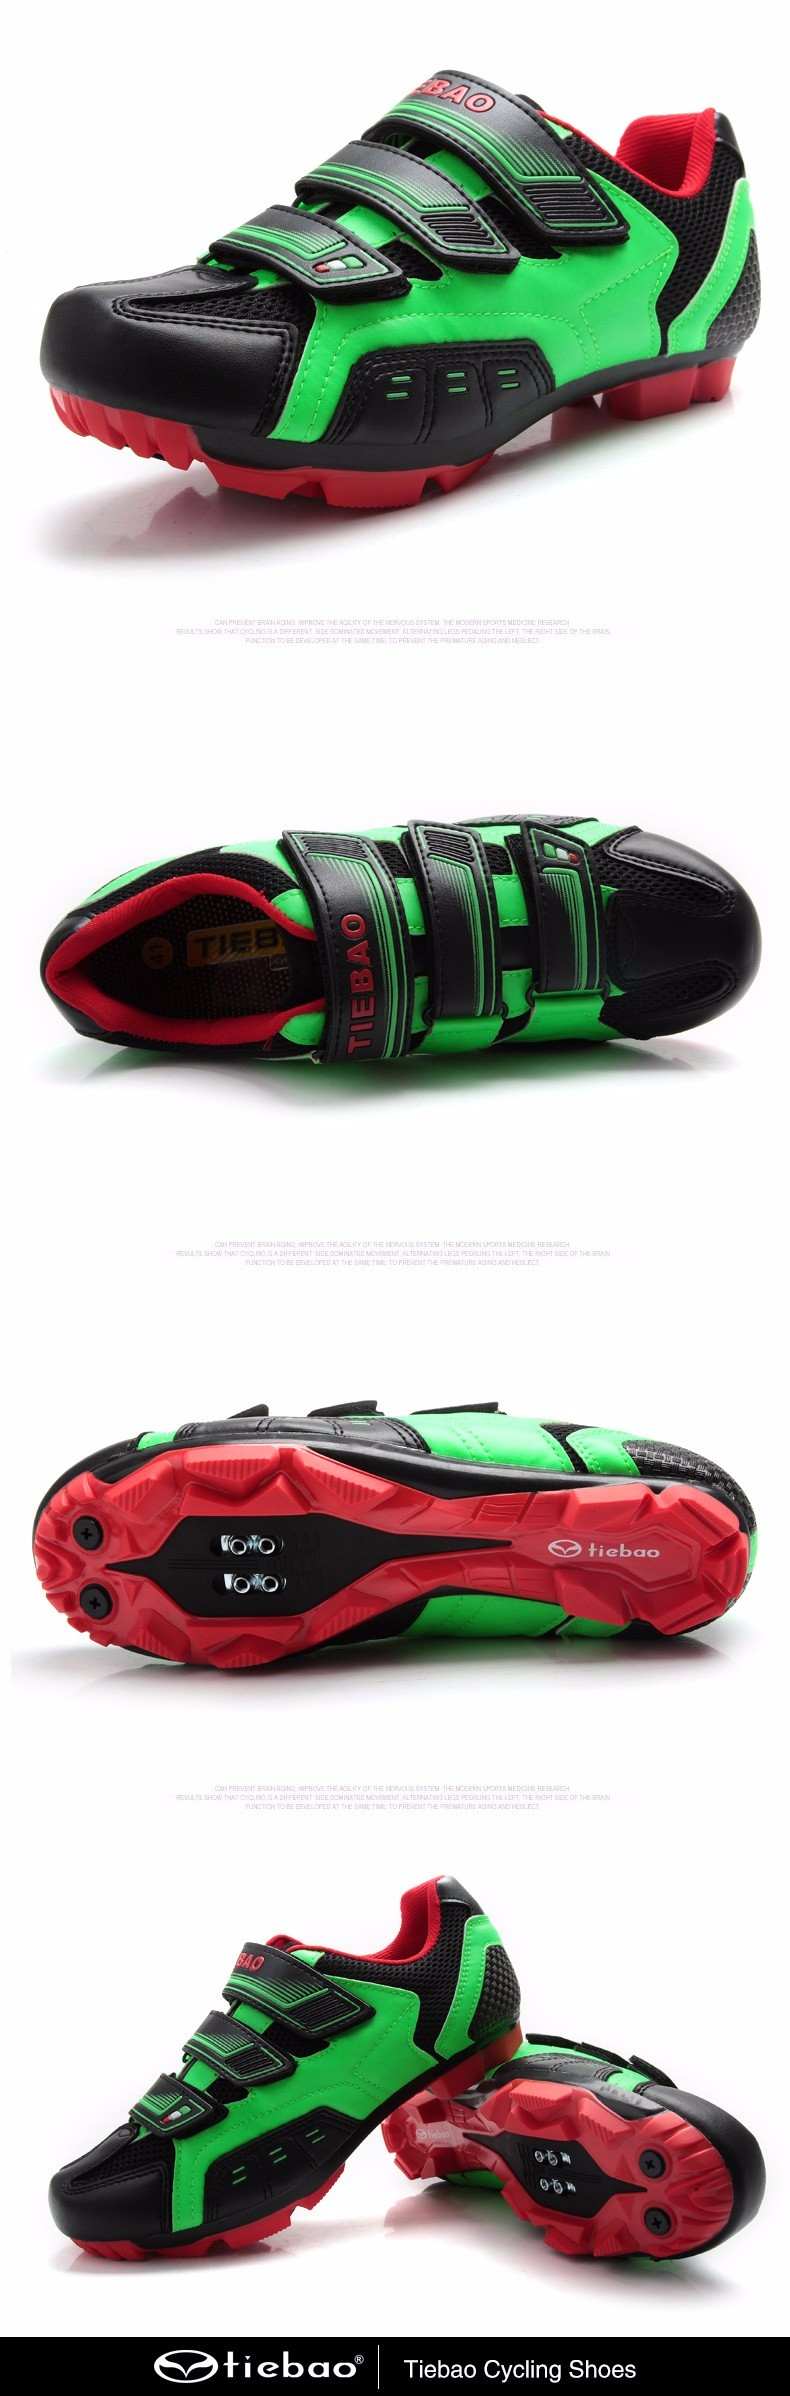 BEST NEW 2016 TIEBAO MEN/WOMEN CYCLING SHOES .AUTOLOCK/SELFLOCK BIKE SHOES SPD/SL/LOOK-KEO CLEATED BICYCLE SHOES